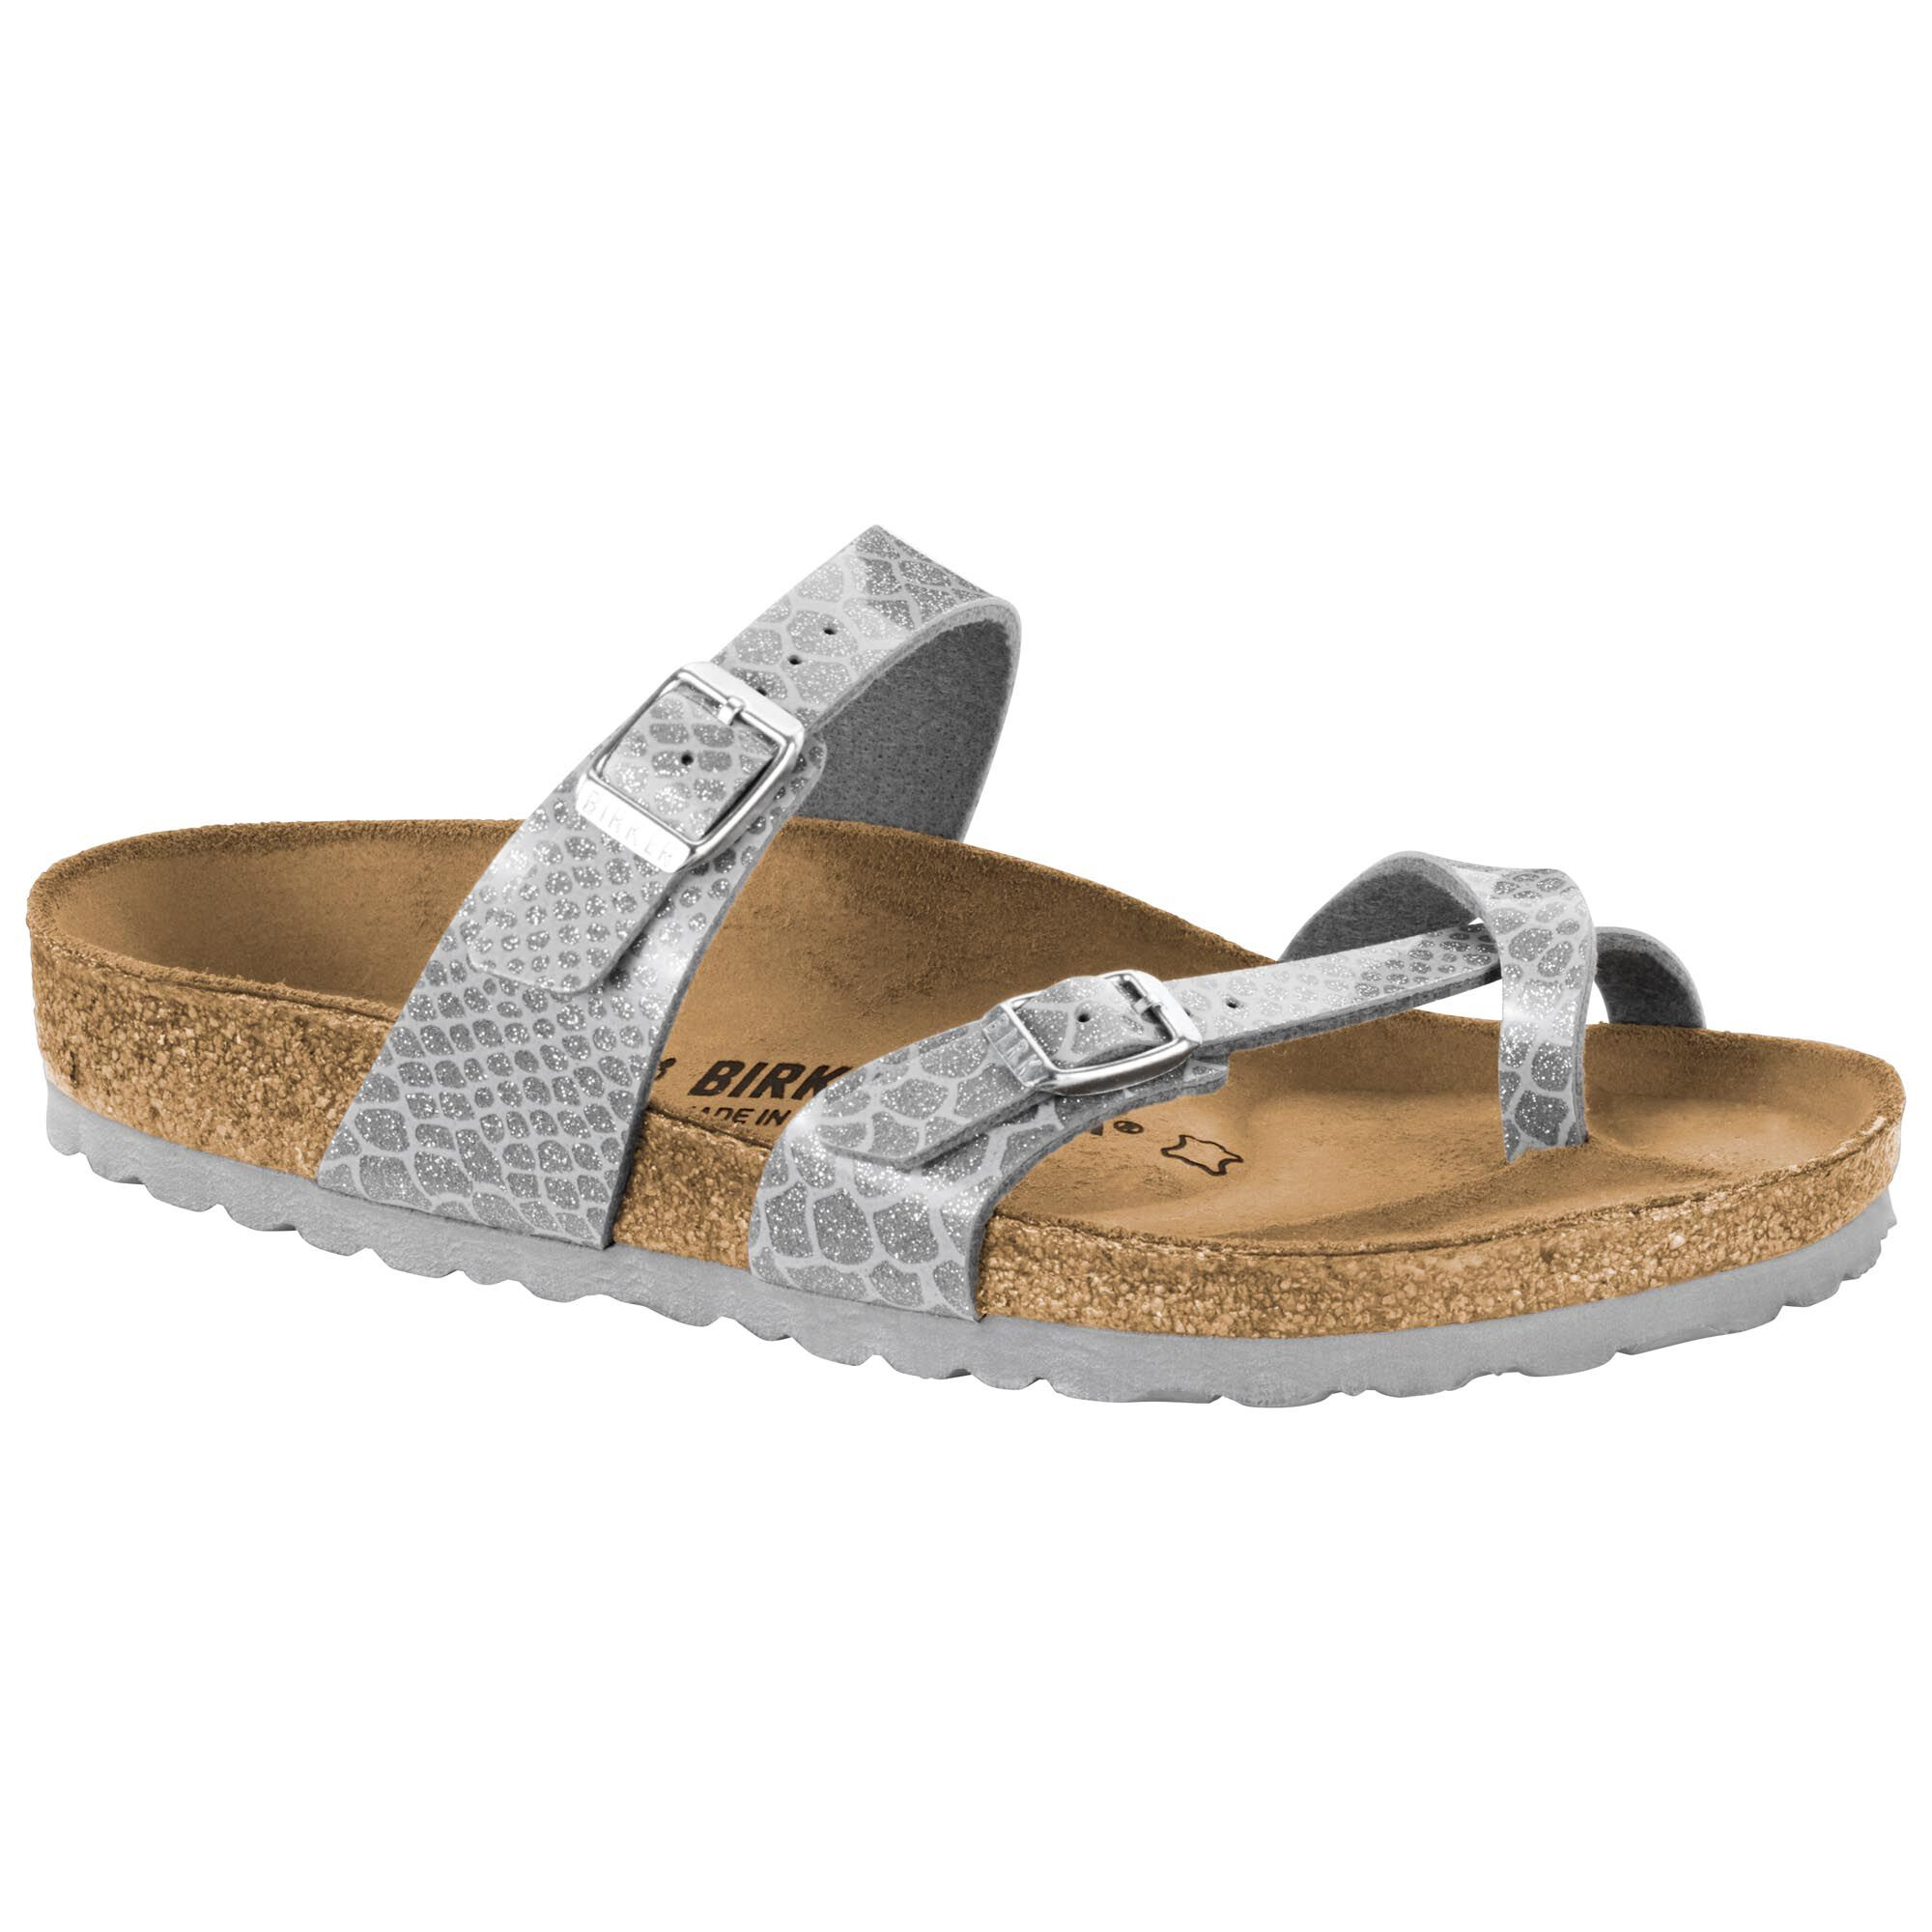 Birkenstock Womens Mayari Magic Snake Regular Fit BirkoFlor Sandal Silver